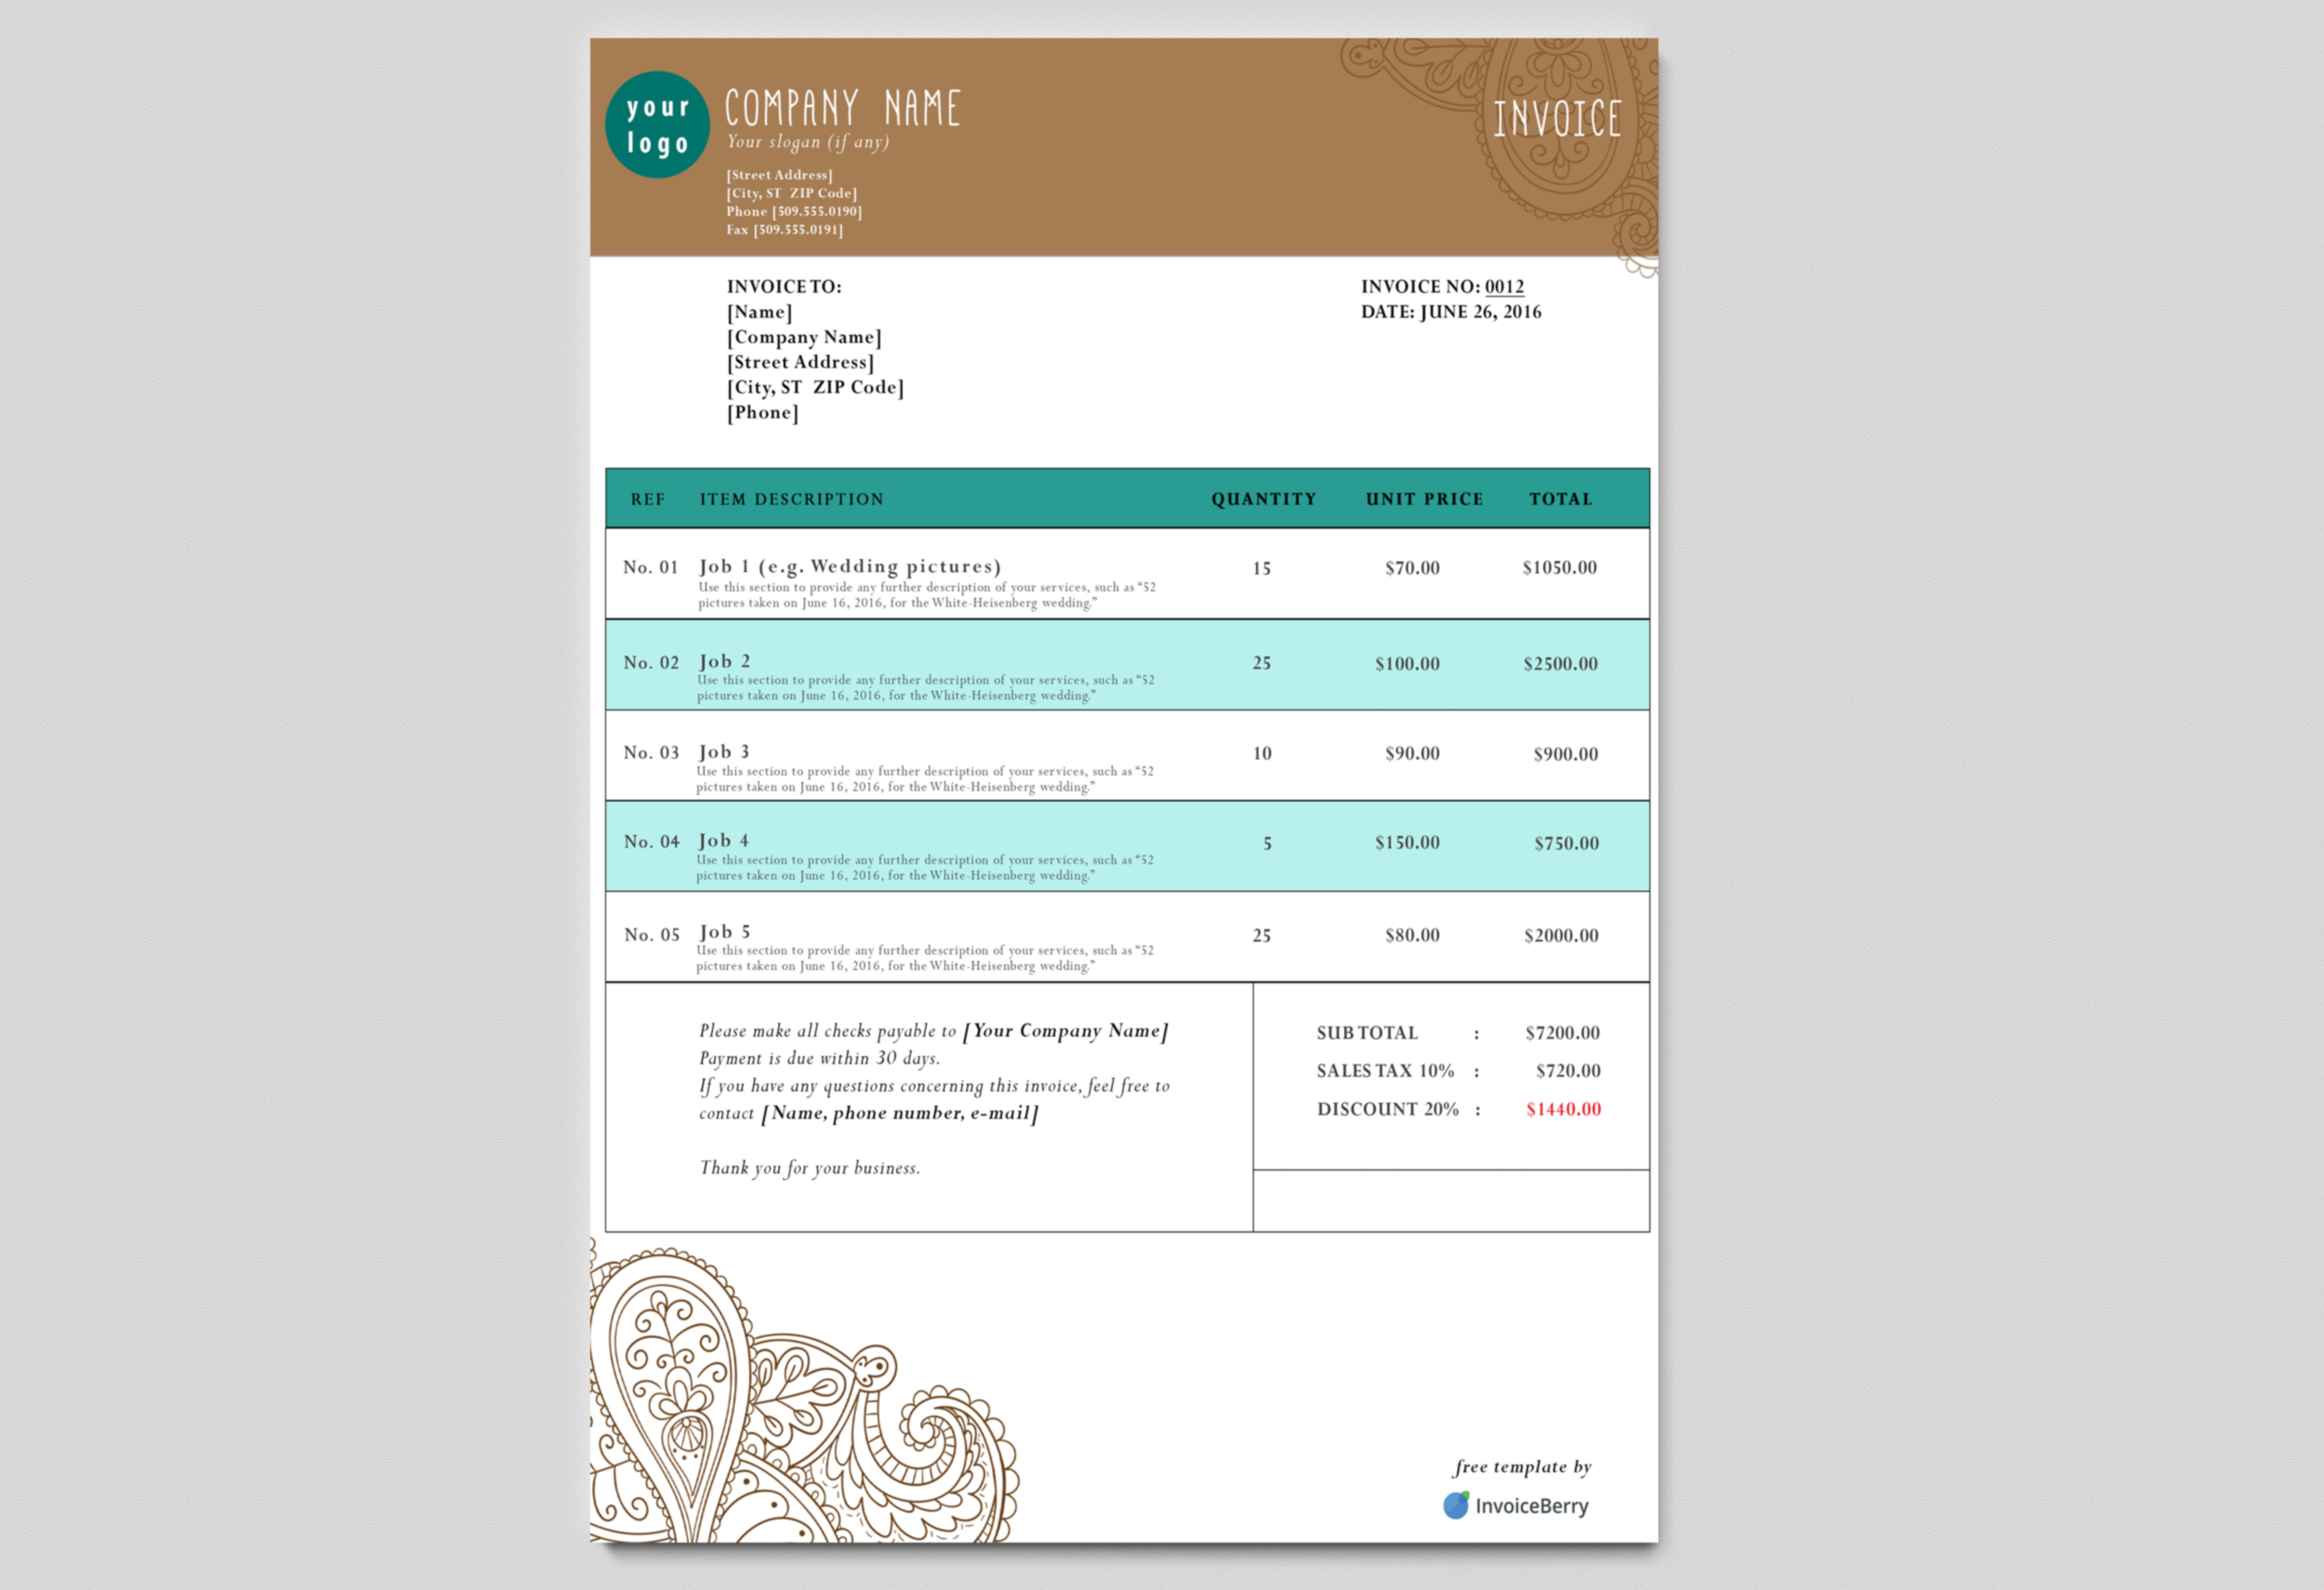 Our New Paisley Tattoo Free Psd Invoice Template Has A Great Earthy But Professional Look Invoice Template Invoice Design Invoicing